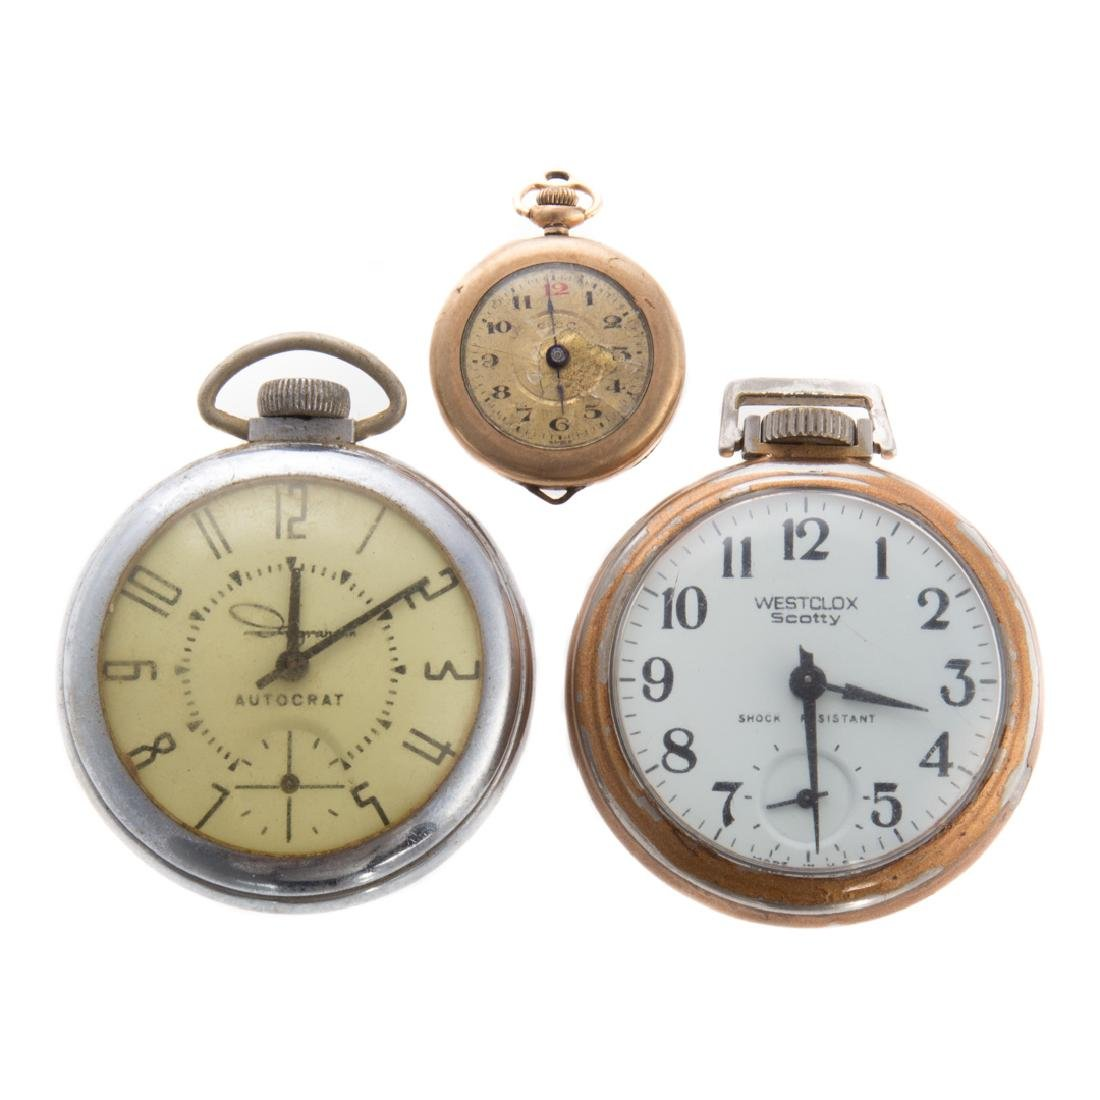 A Trio of Vintage Pocket Watches